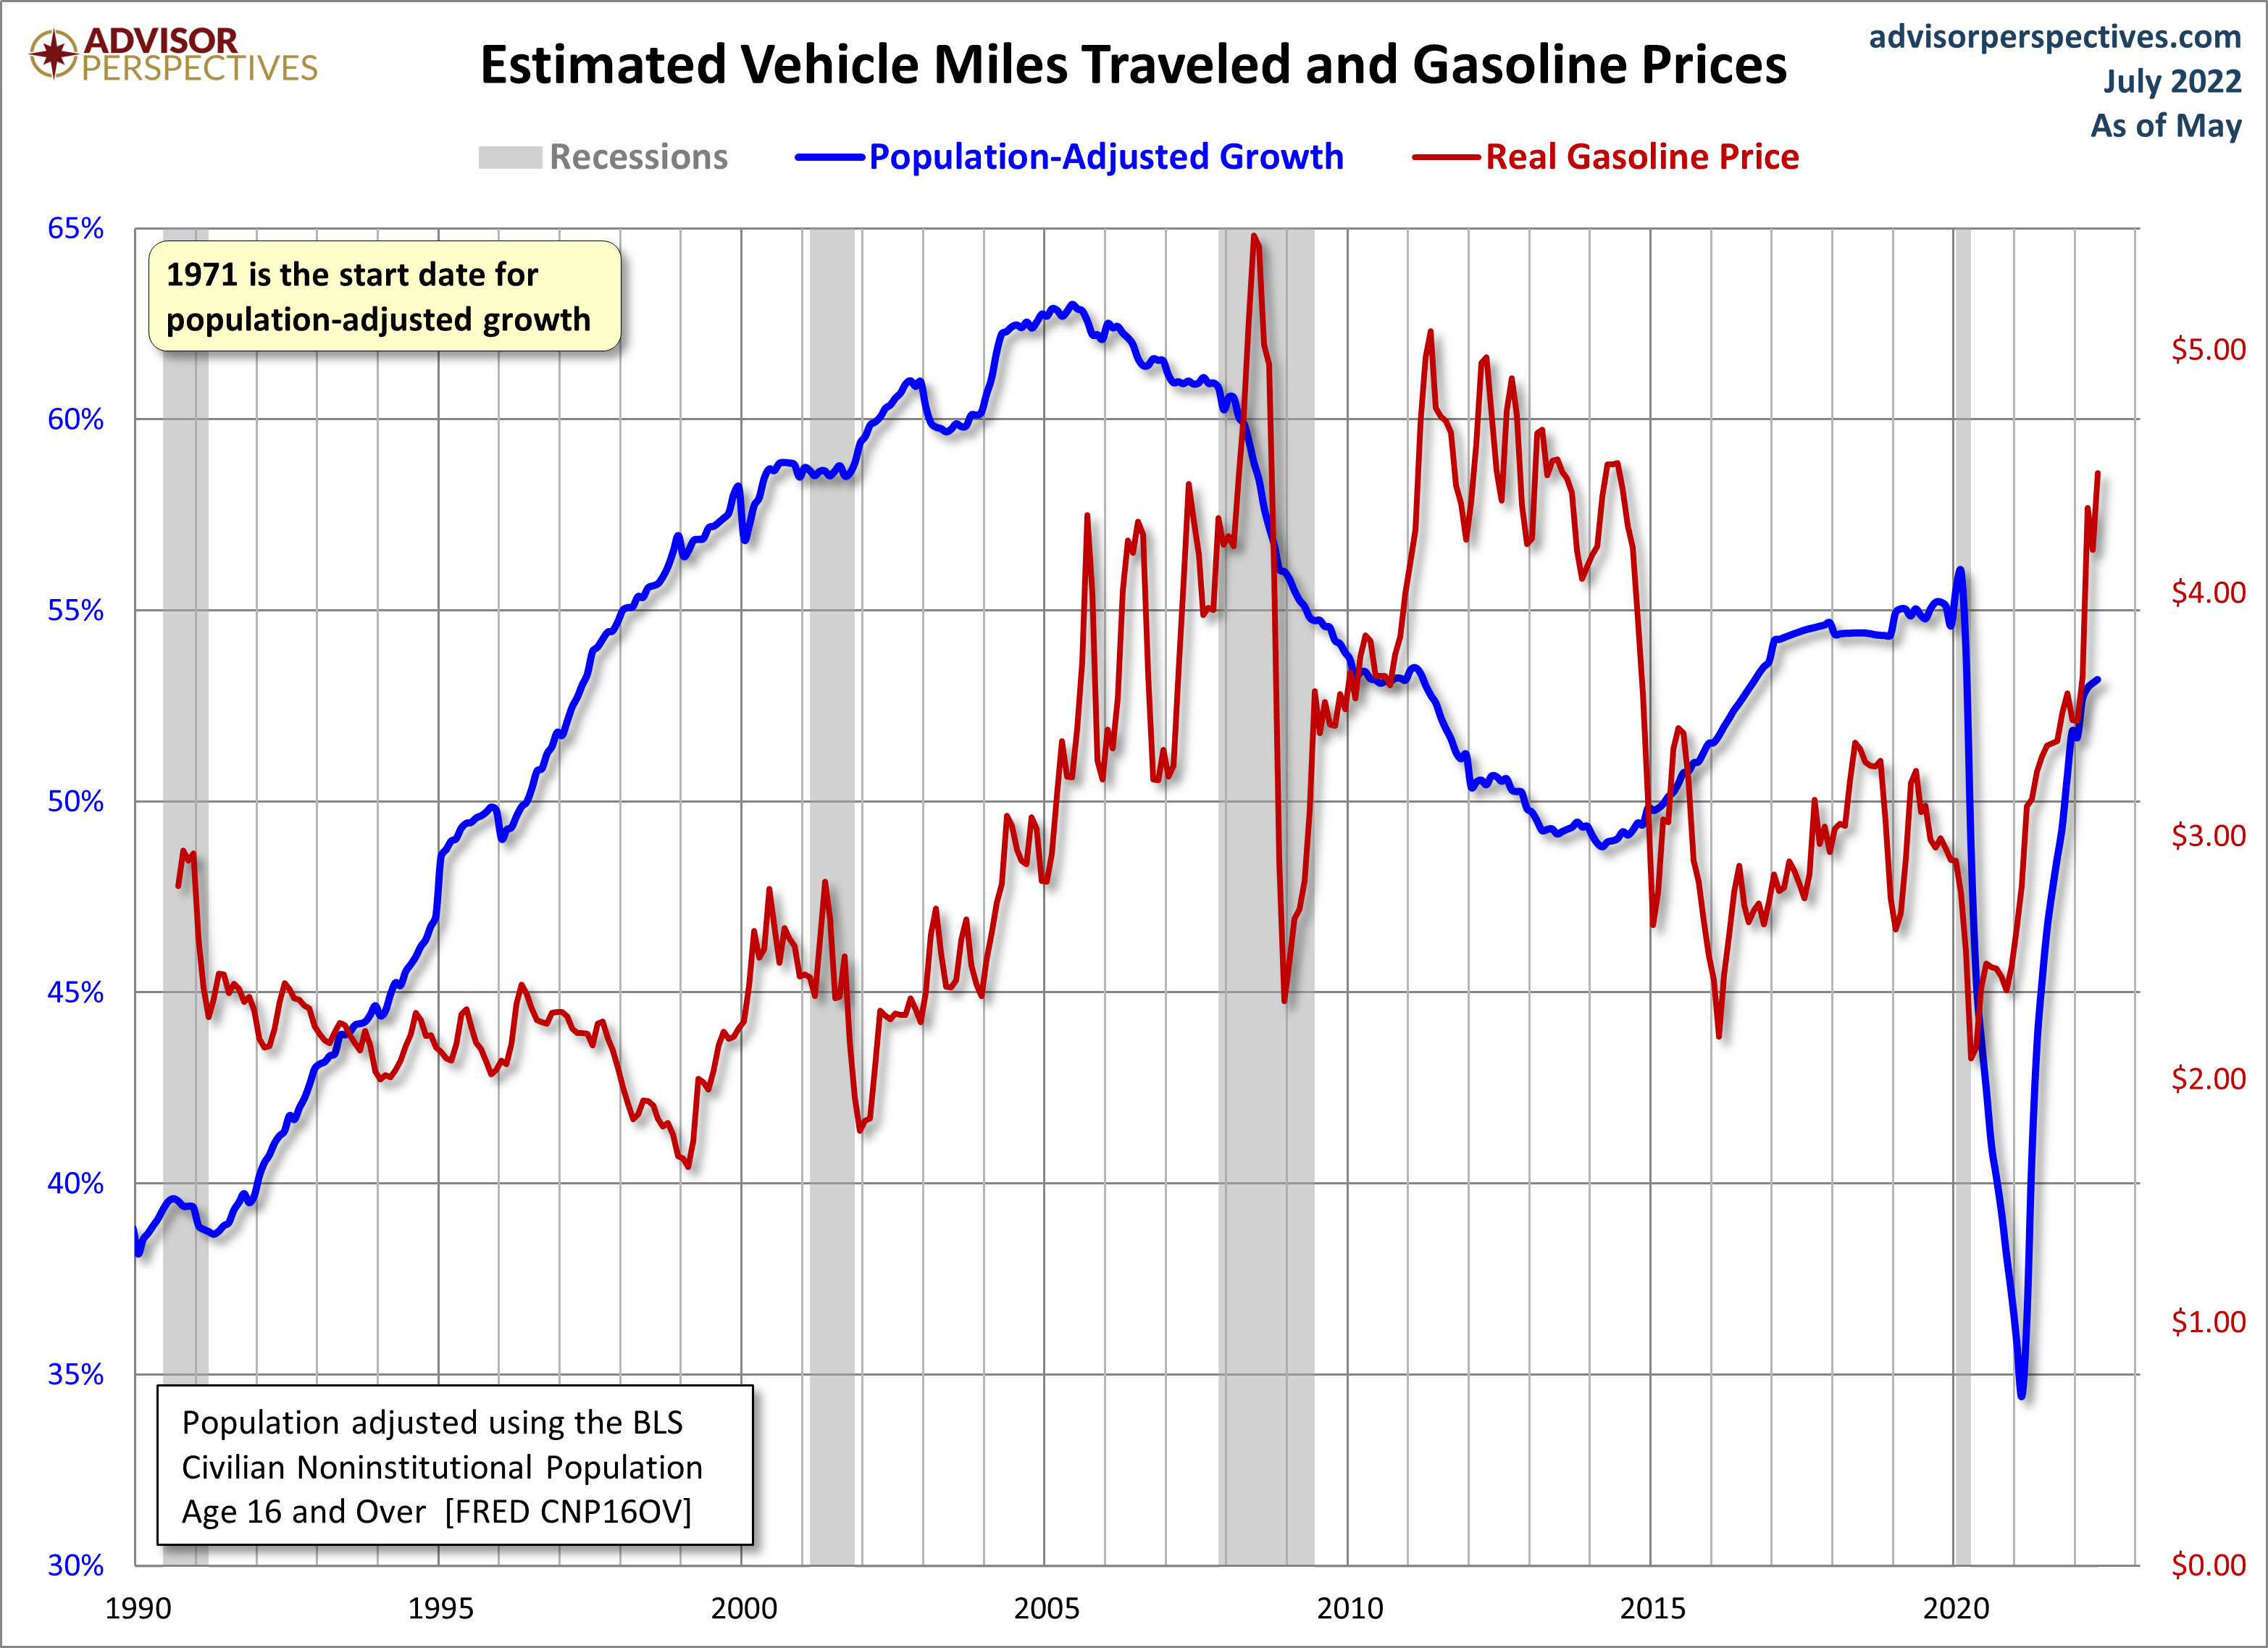 Miles Traveled and Gasoline Prices